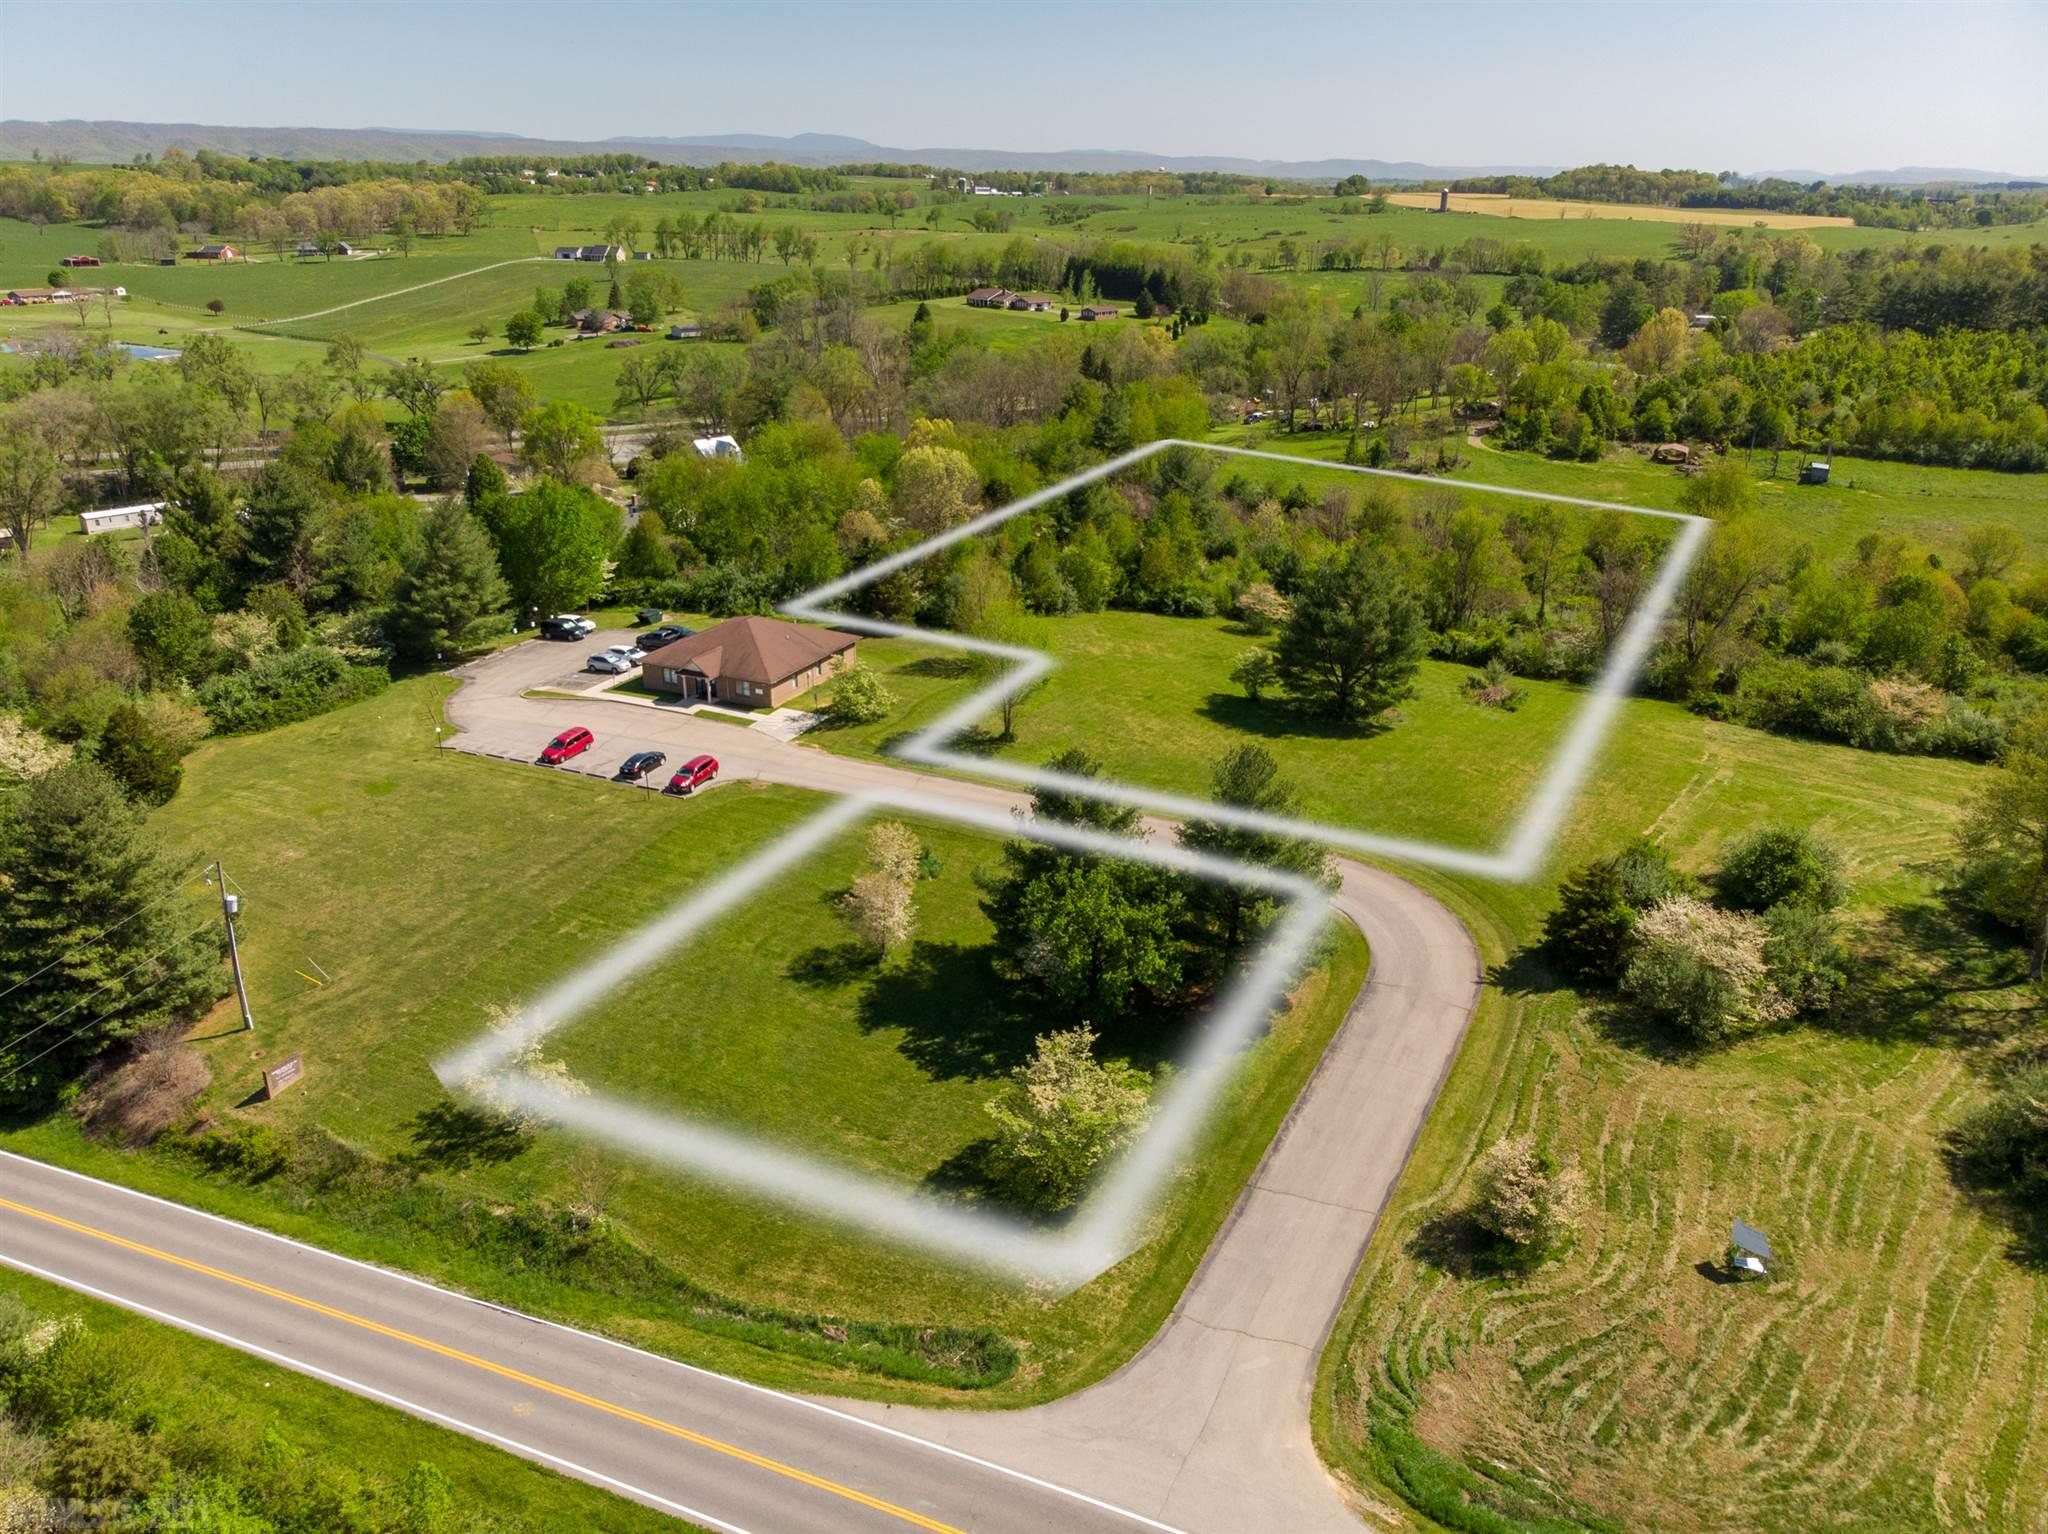 Prime commercially zoned land with excellent road frontage on Cougar Trail Road in Dublin. Provides tons of promise for any new or firmly established business! Situated right off Route 11, this lot is the perfect area to build and grow your business!